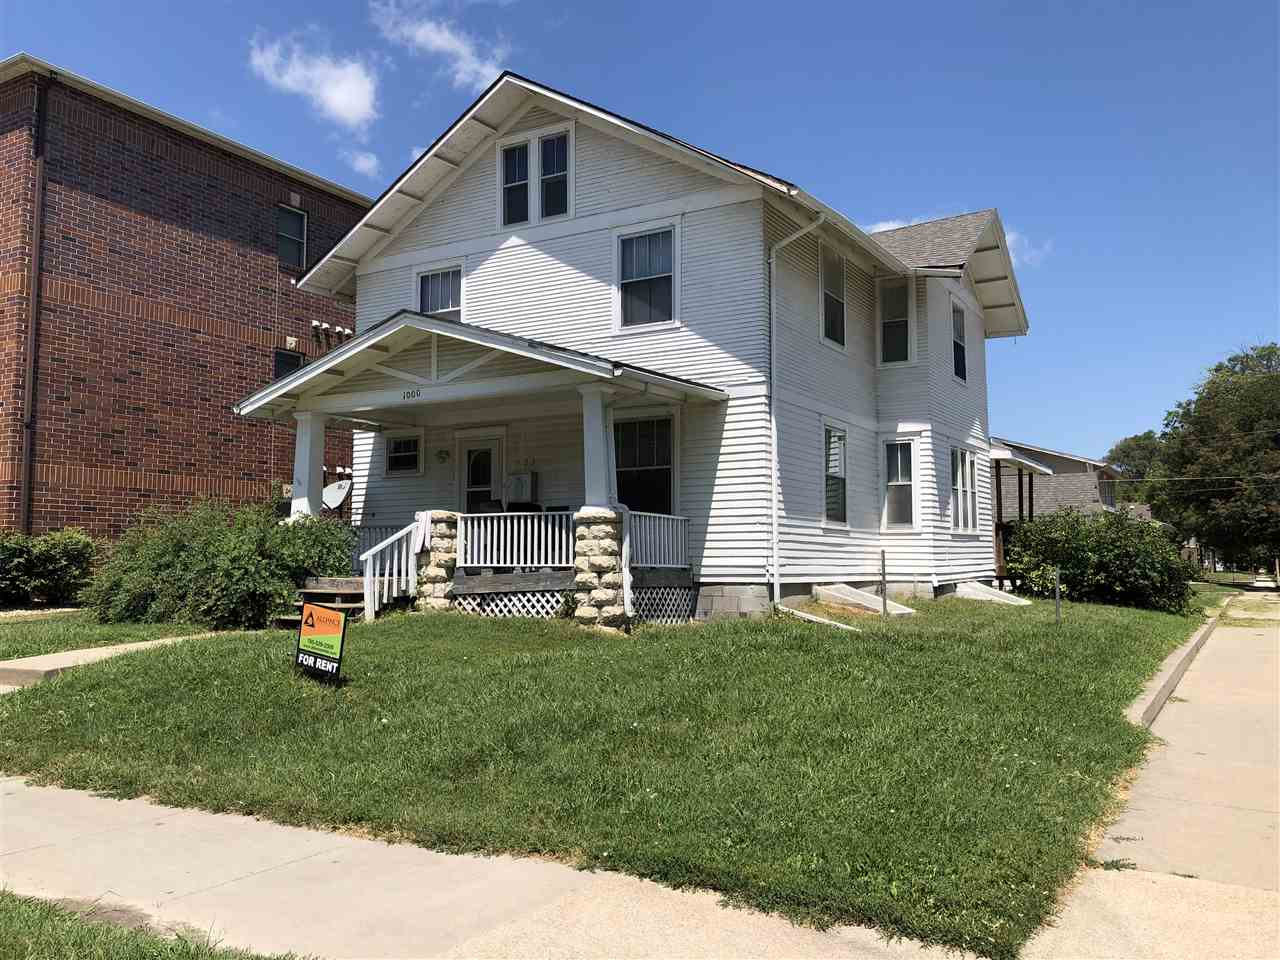 NOW IS THE TIME TO BY THIS PROPERTY, Well maintained, lower level has been recently remodeled with updated kitchen and flooring, Each unit is fully equipped including dishwasher, washer and dryer.  Zoned R-3